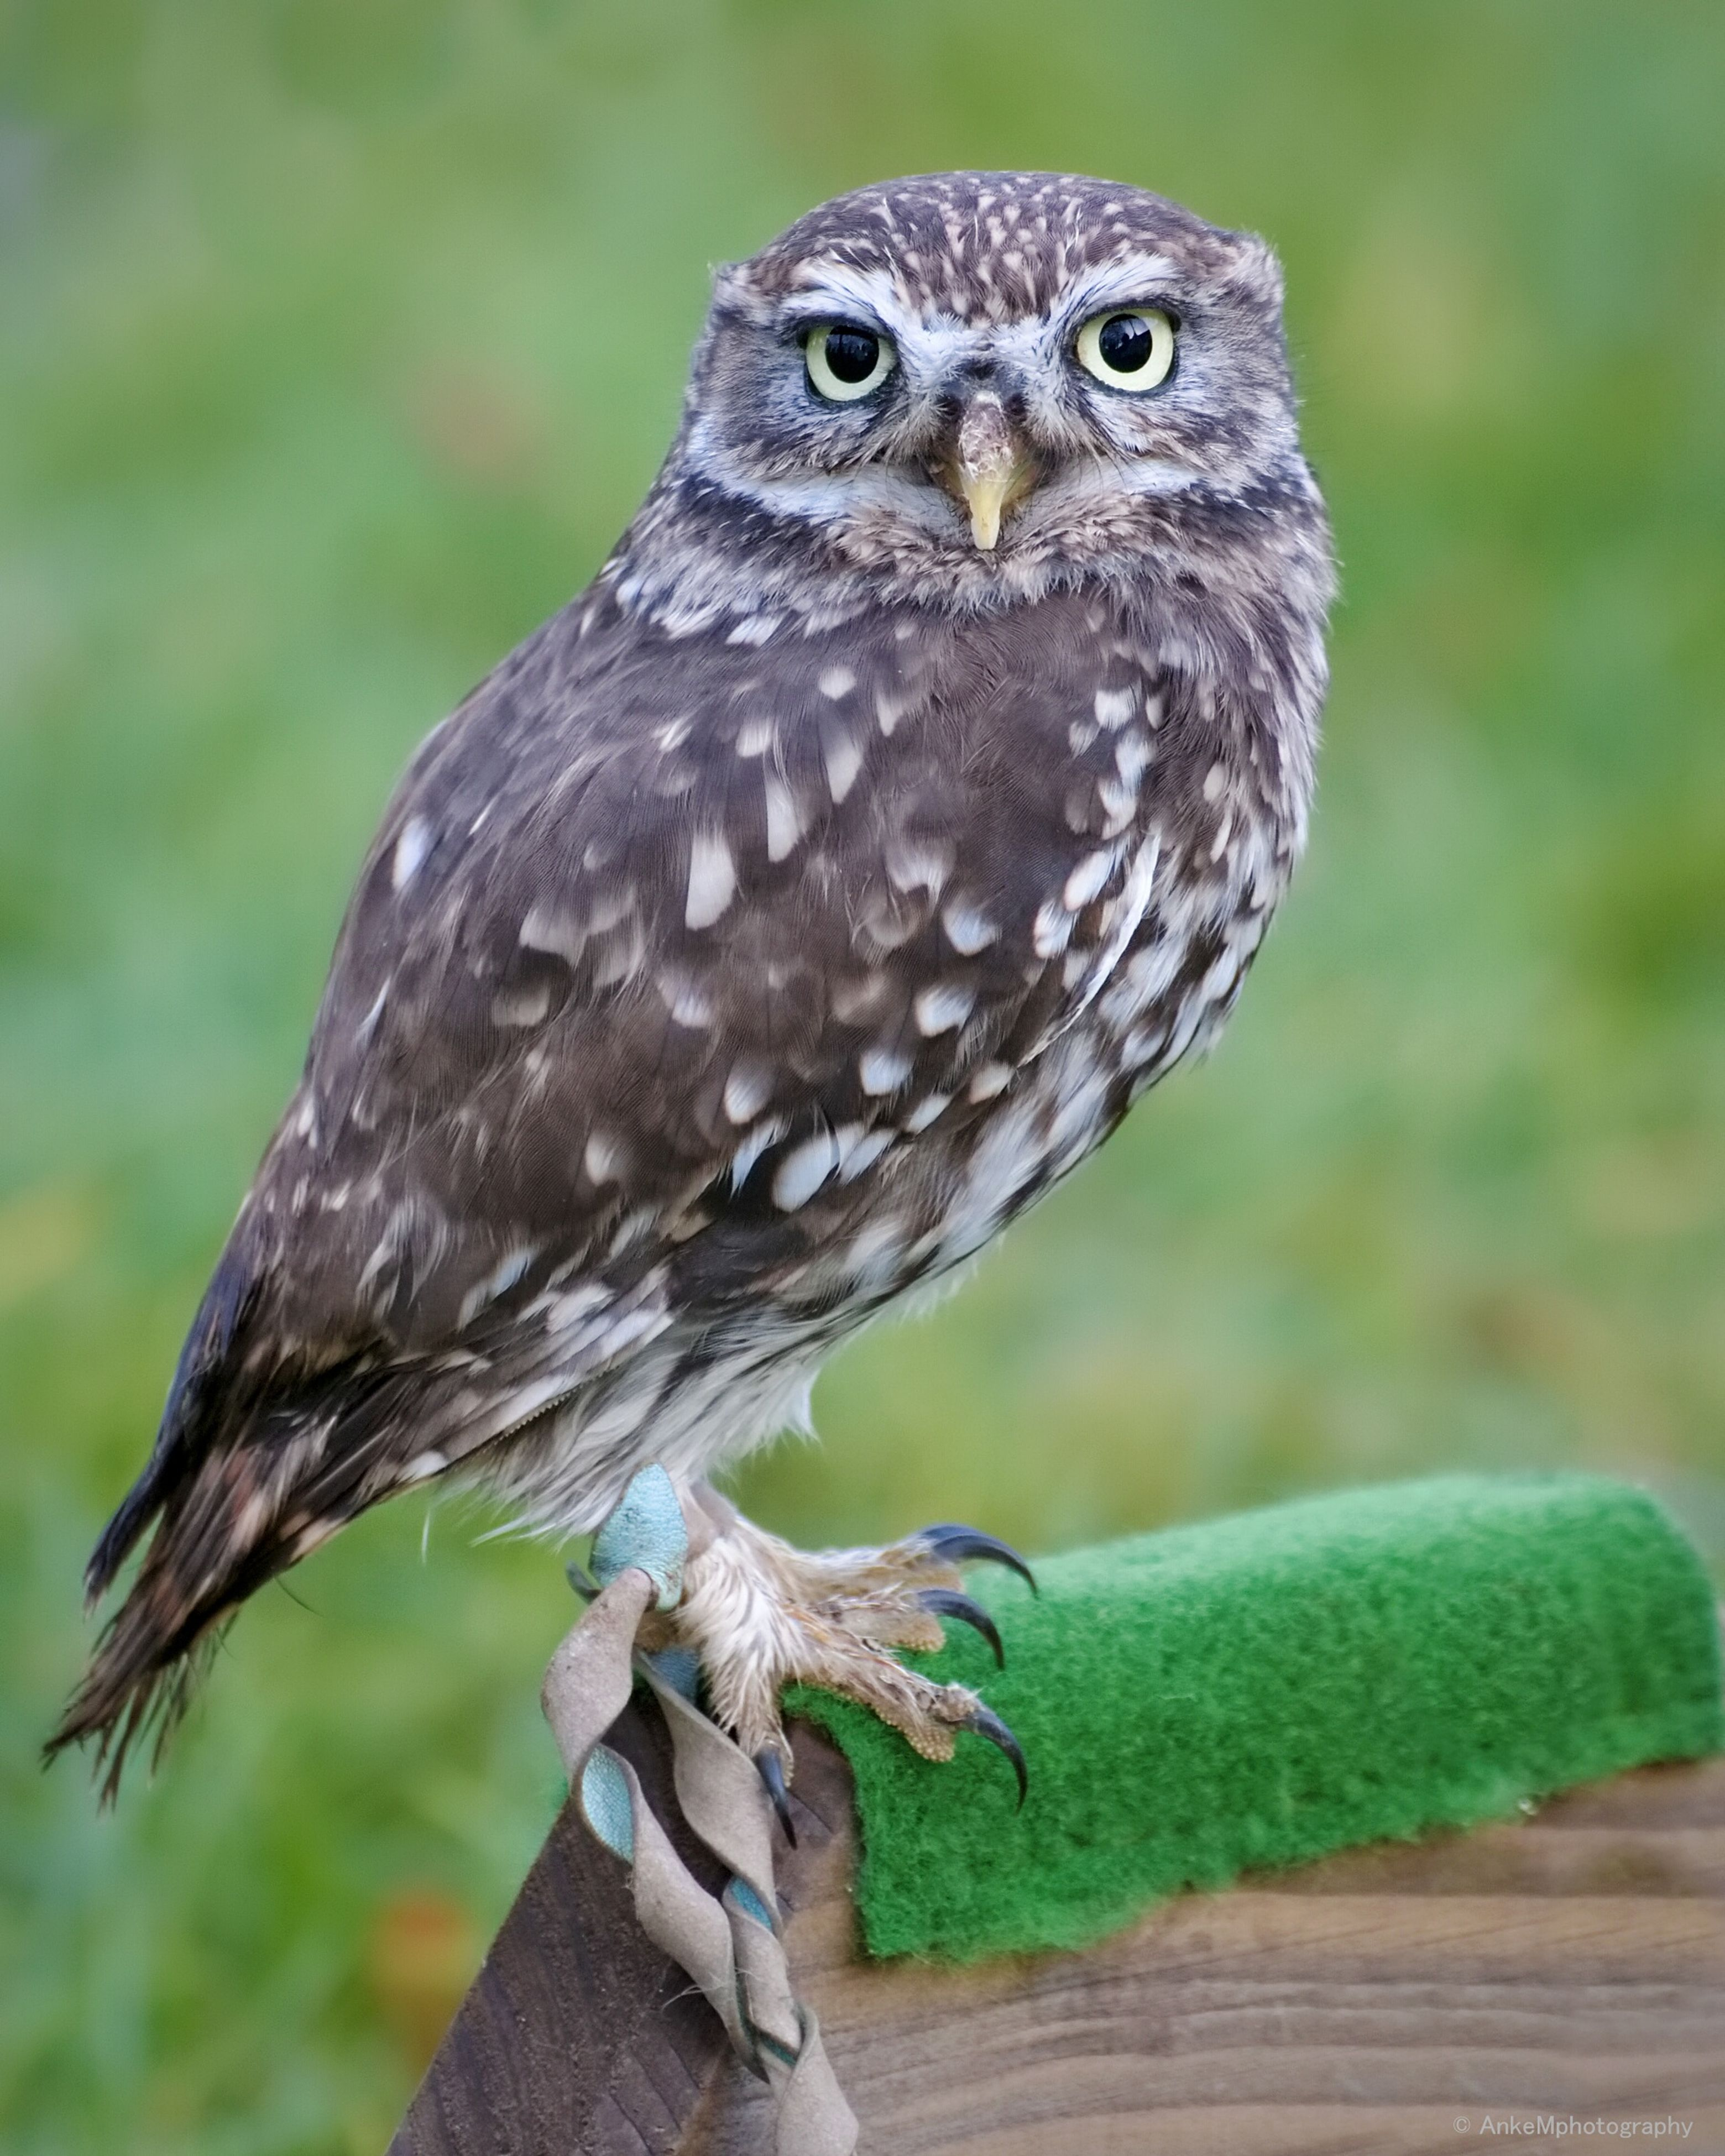 animal themes, one animal, bird, animals in the wild, wildlife, focus on foreground, close-up, perching, full length, beak, bird of prey, owl, looking away, side view, nature, outdoors, day, no people, zoology